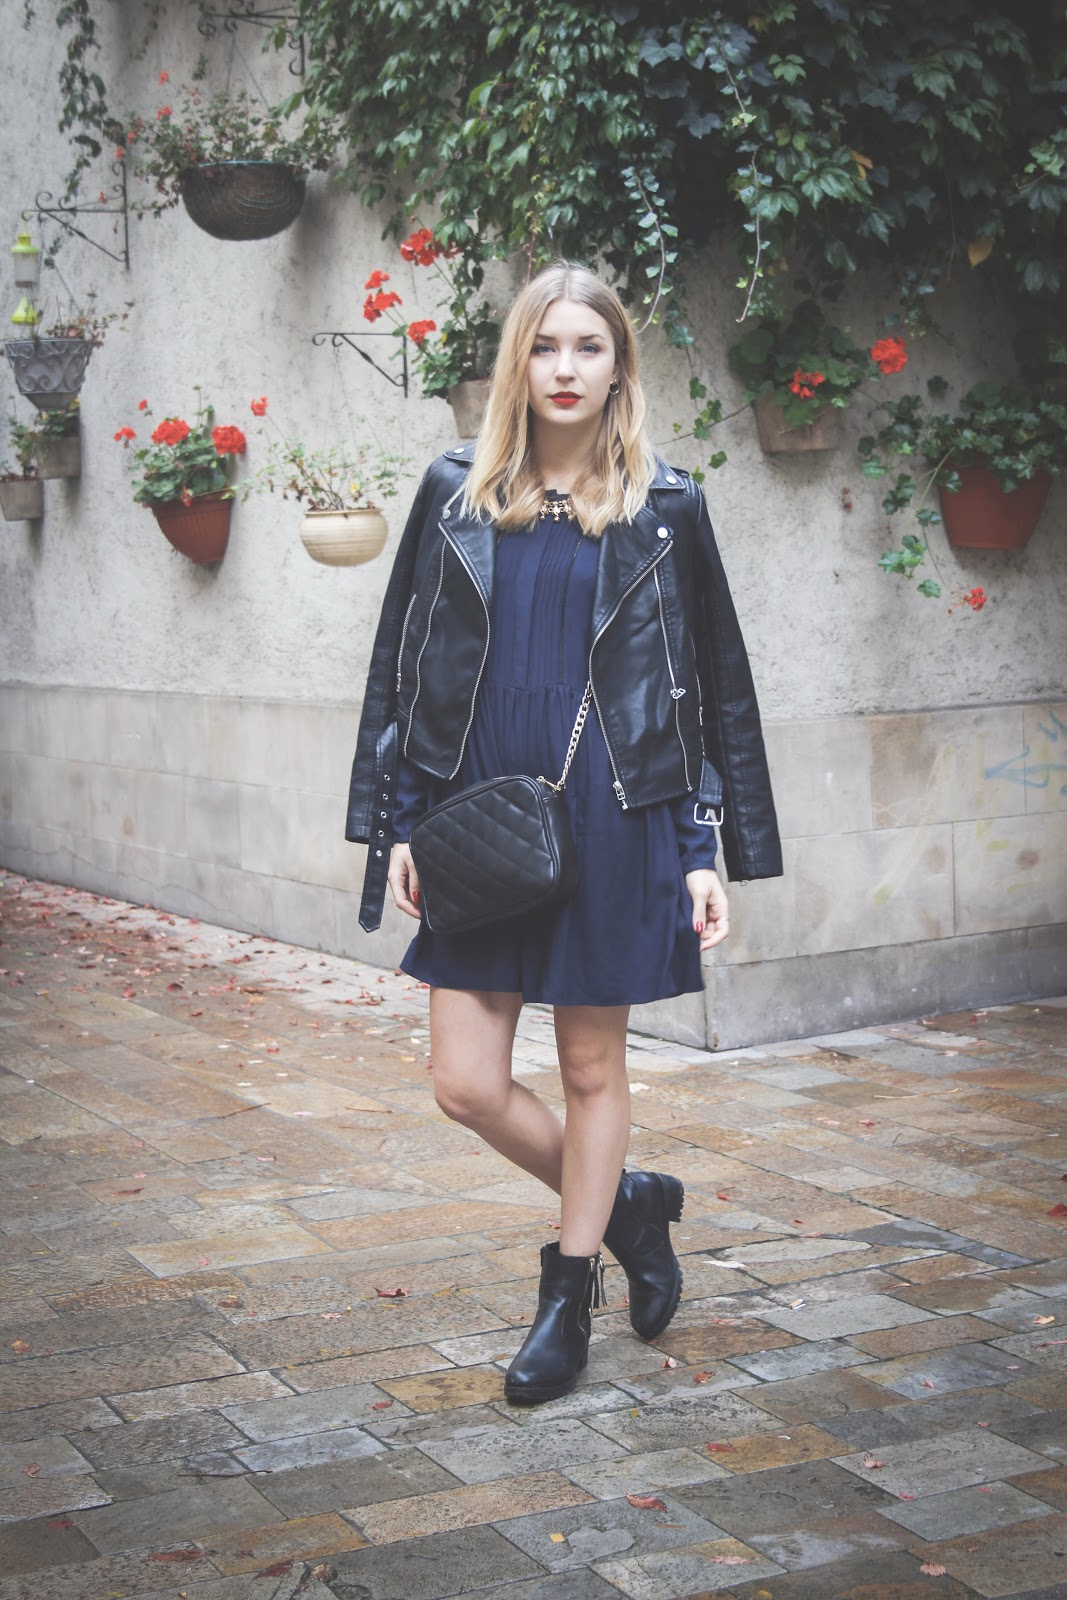 How to wear a dress with biker boots